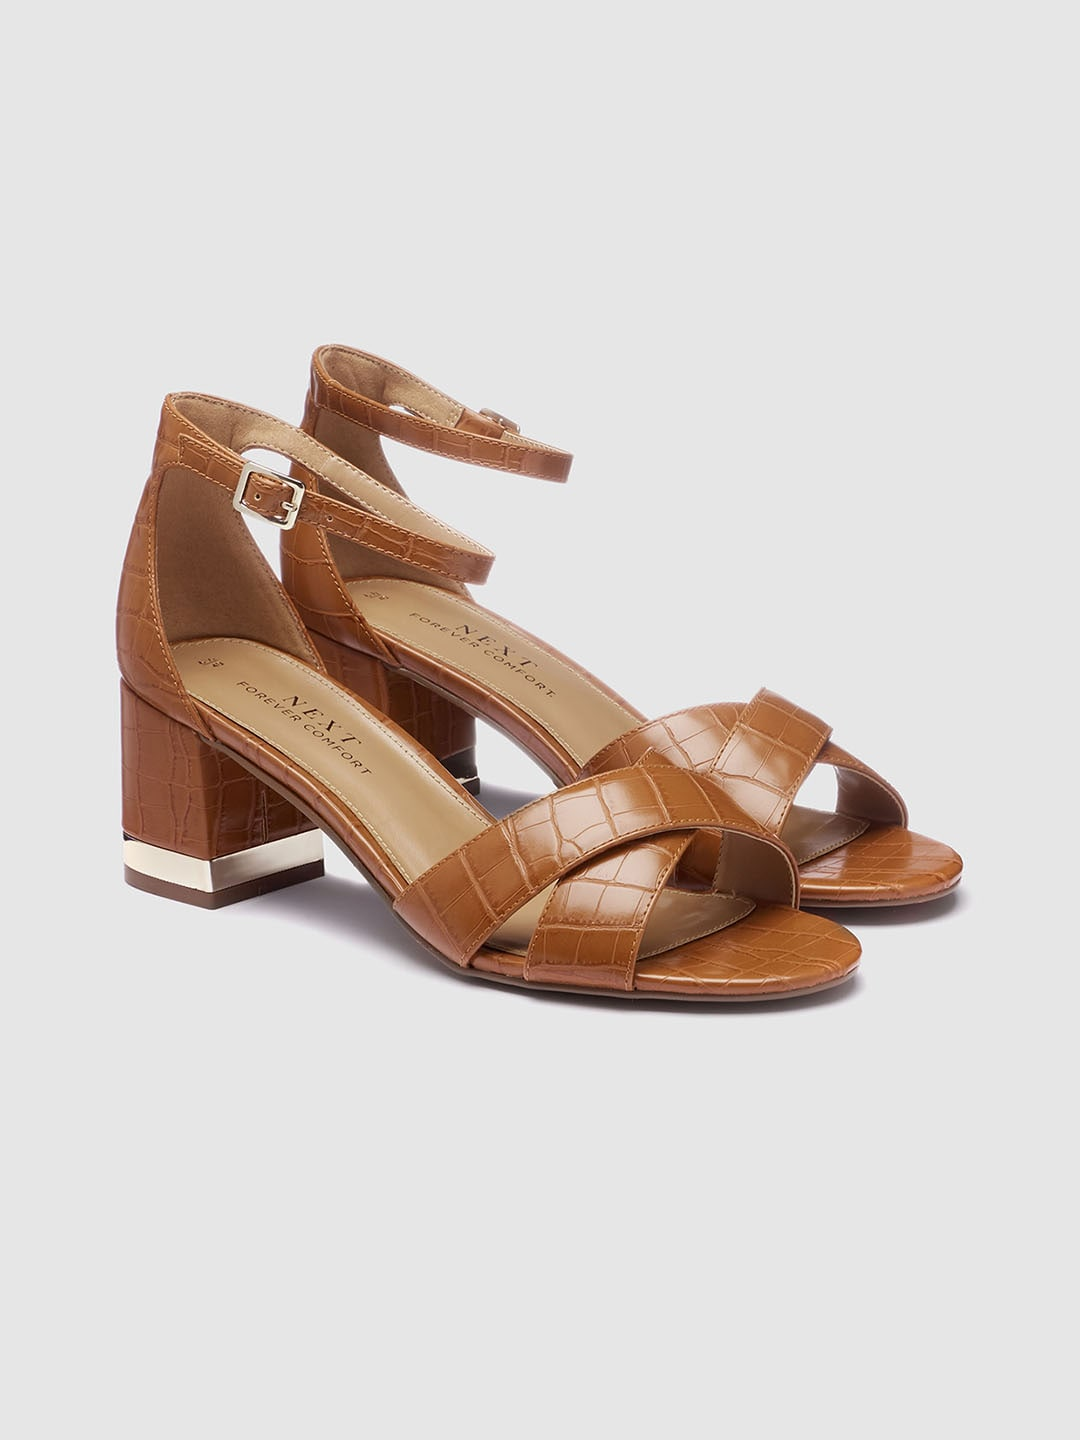 5588a0a4676 Women Next Shoes - Buy Women Next Shoes online in India